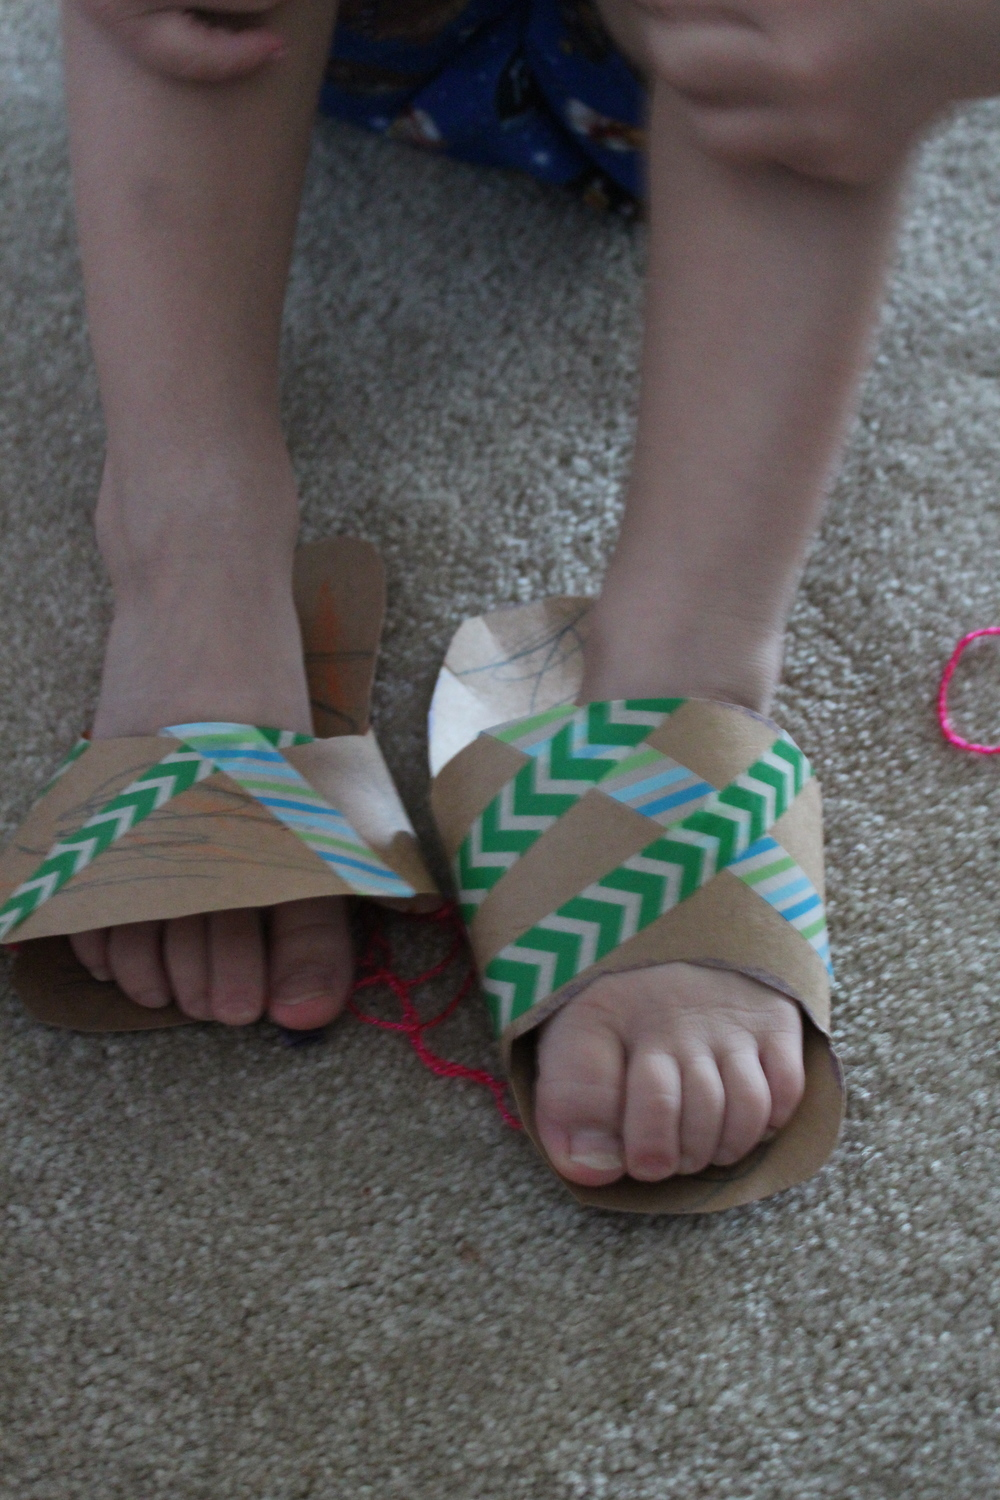 Middle's slippers.